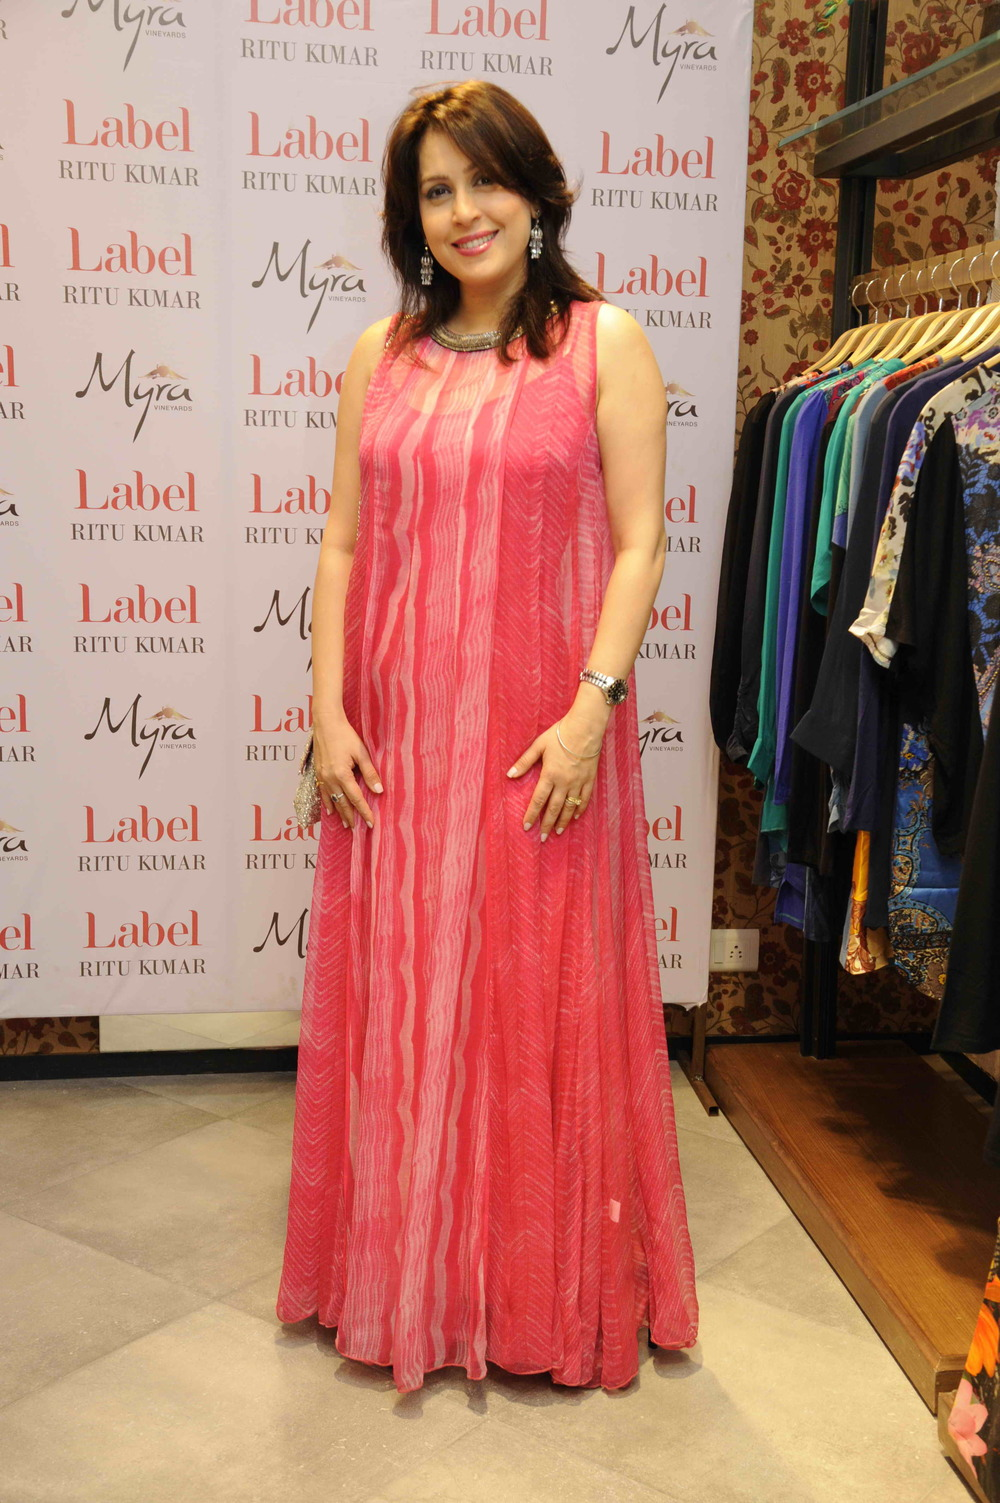 label-ritu-kumar-palladium-launch-18.jpg